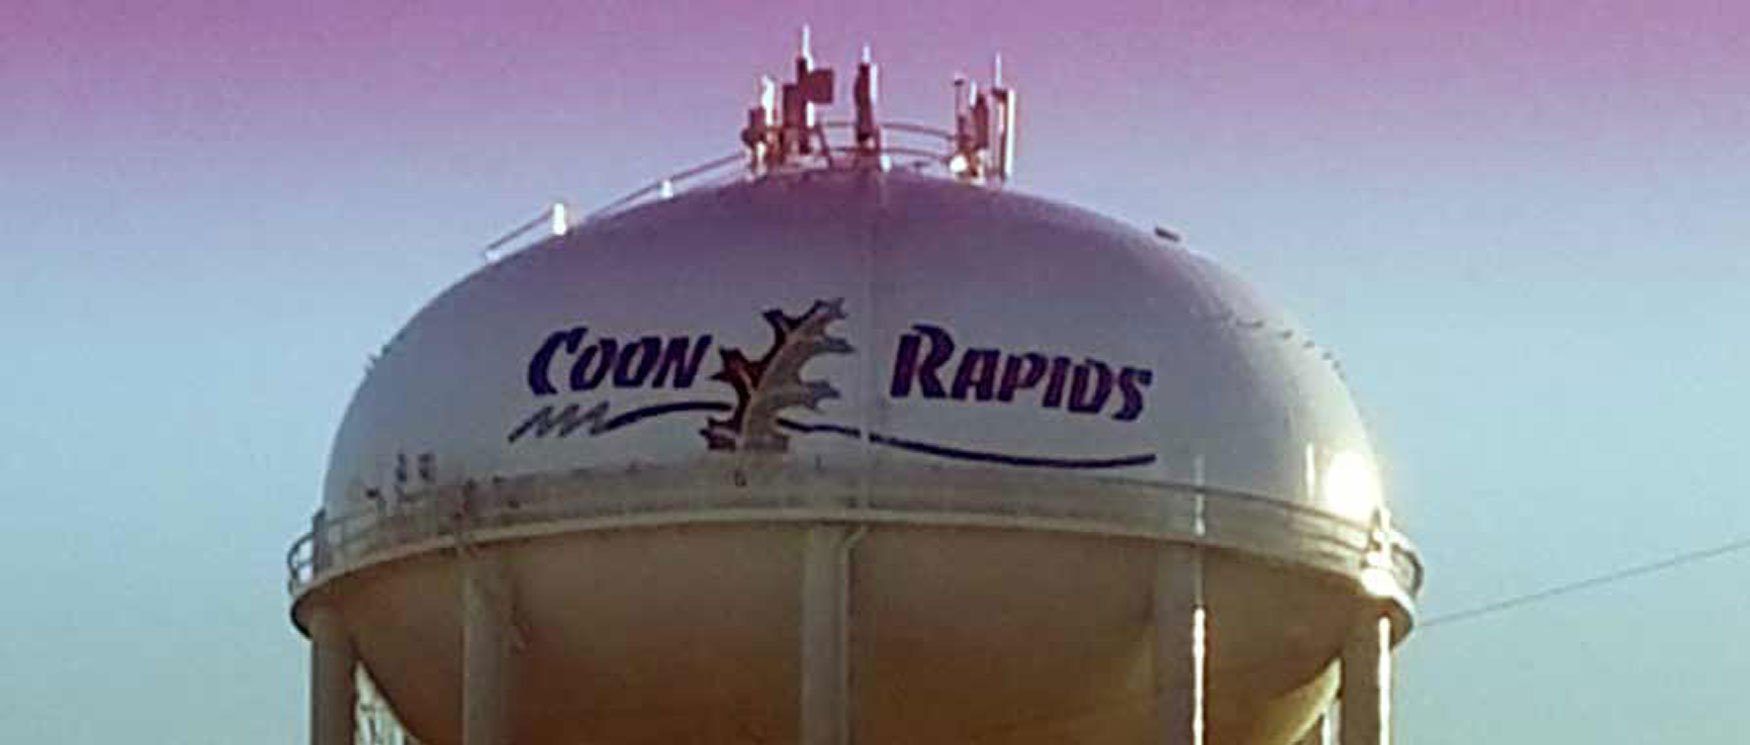 We offer residential and commercial plumbing services in the city of Coon Rapids